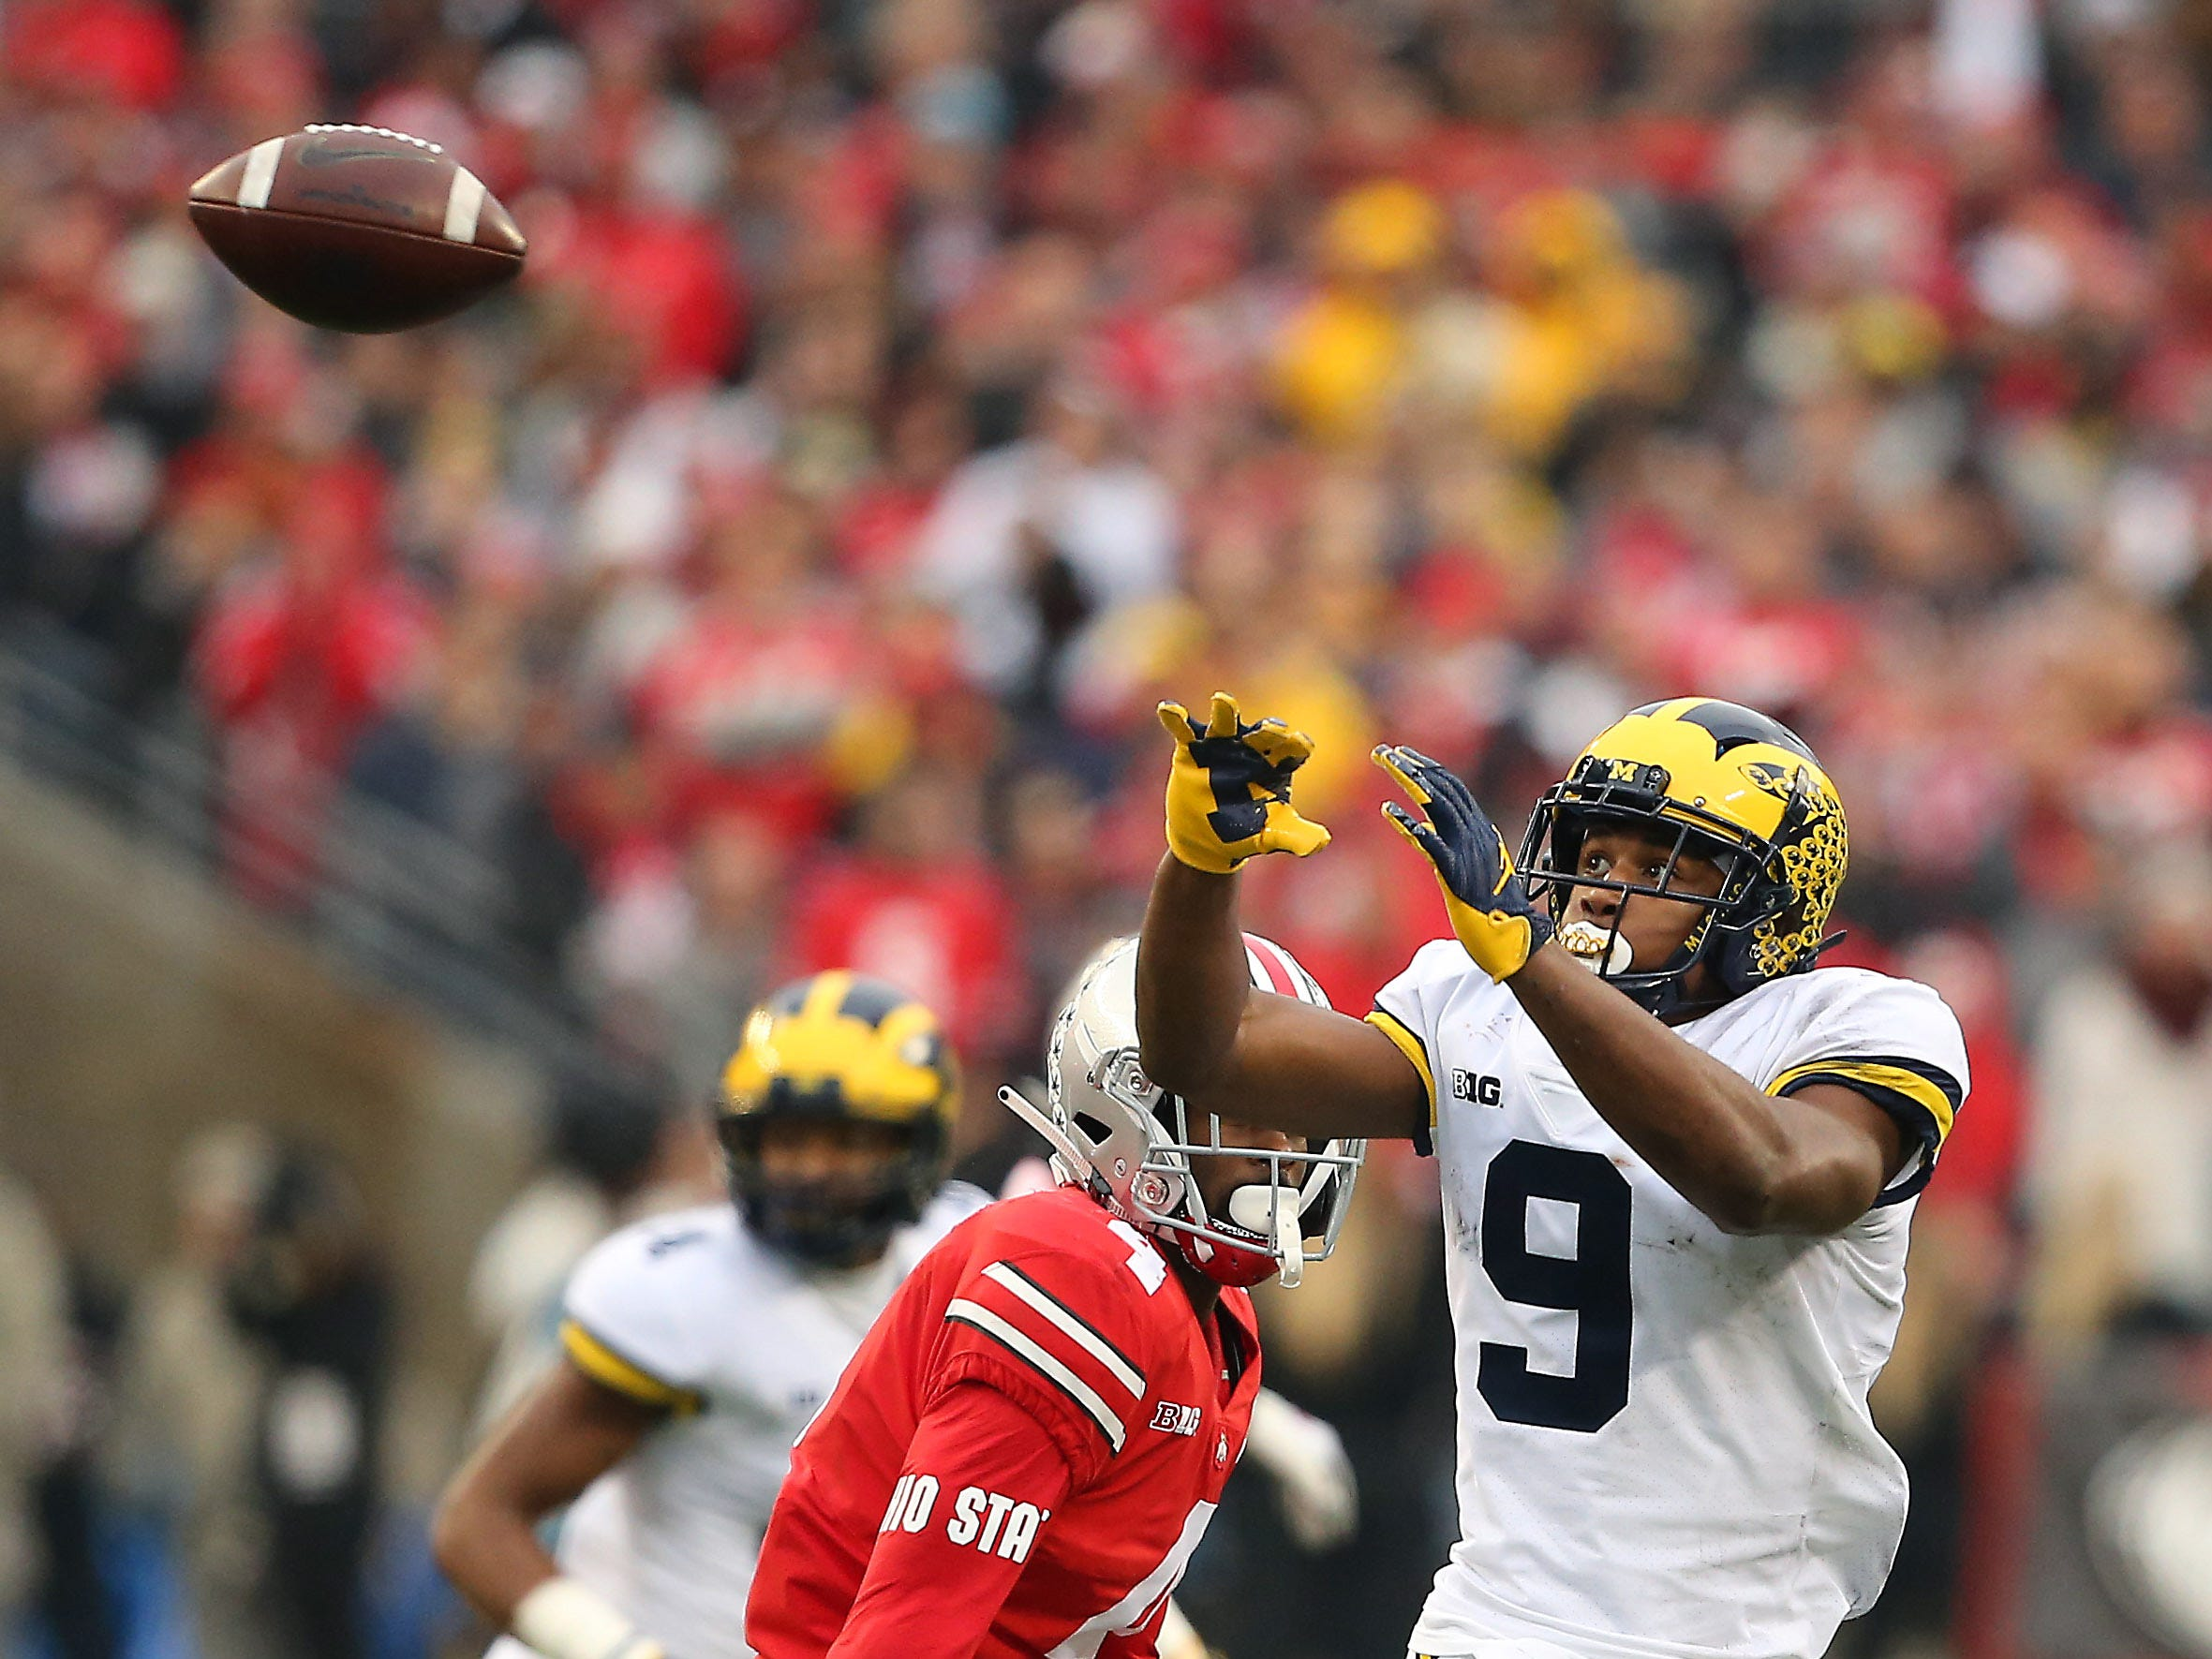 Michigan Wolverines wide receiver Donovan Peoples-Jones (9 ), about to catch a second-quarter pass in front of Ohio State Buckeyes safety Jordan Fuller (4) during the second quarter at Ohio Stadium.